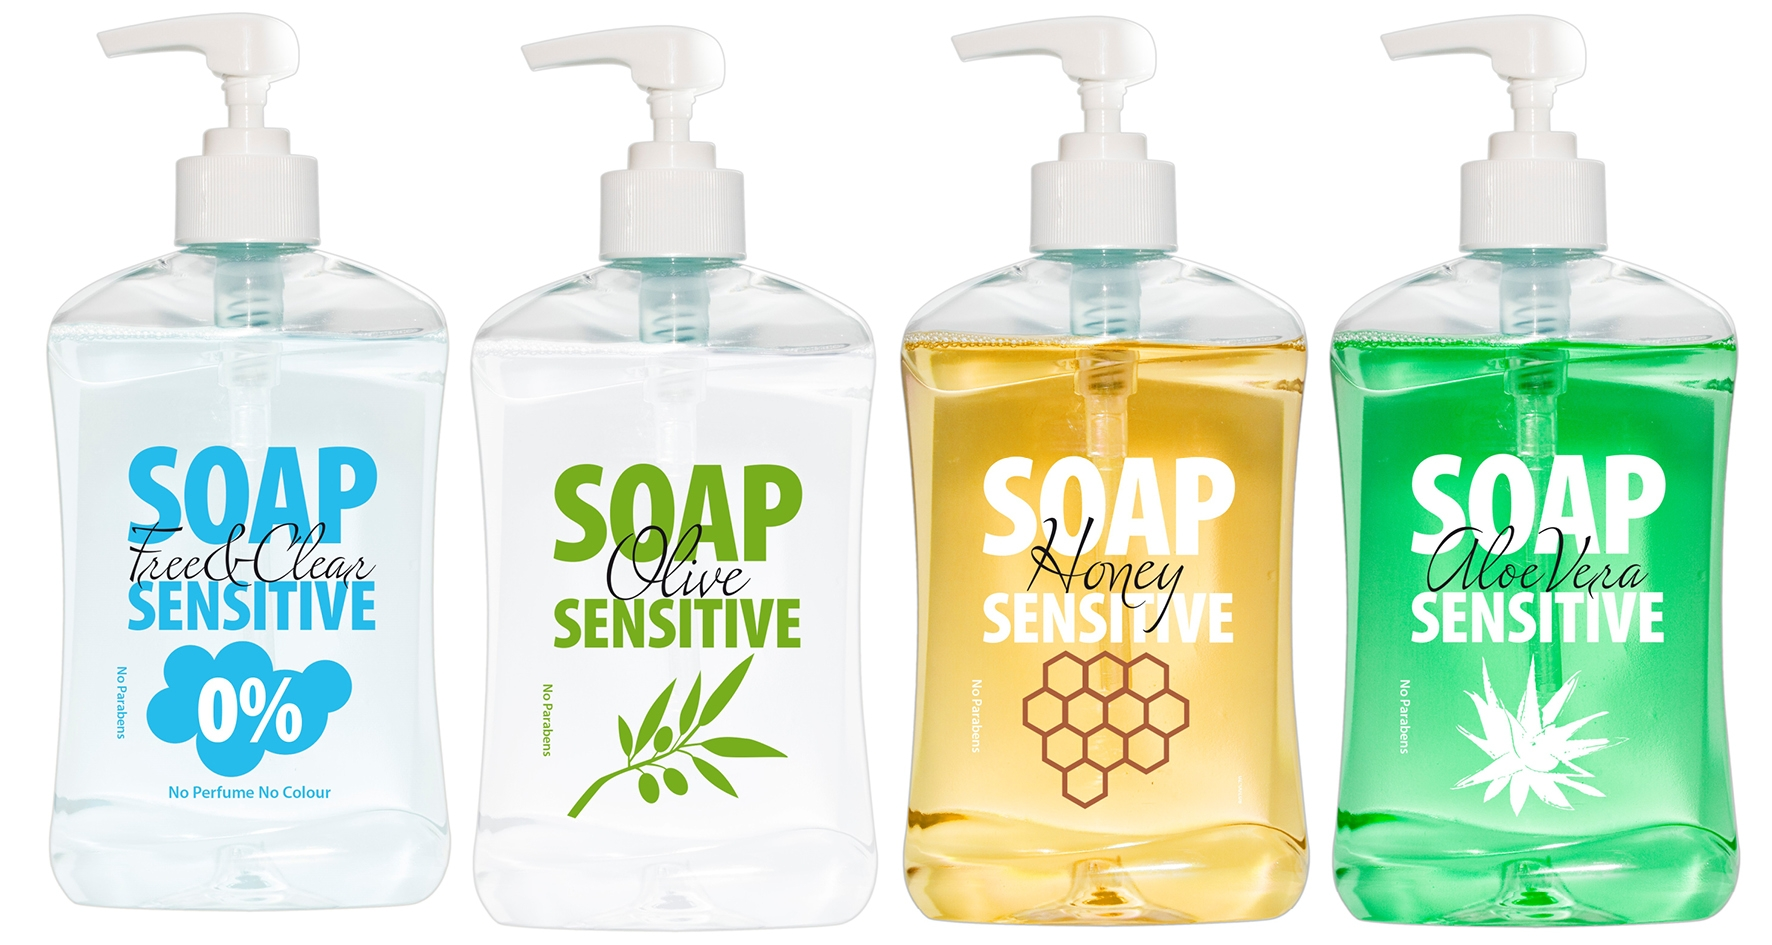 Soapsensitive grupp